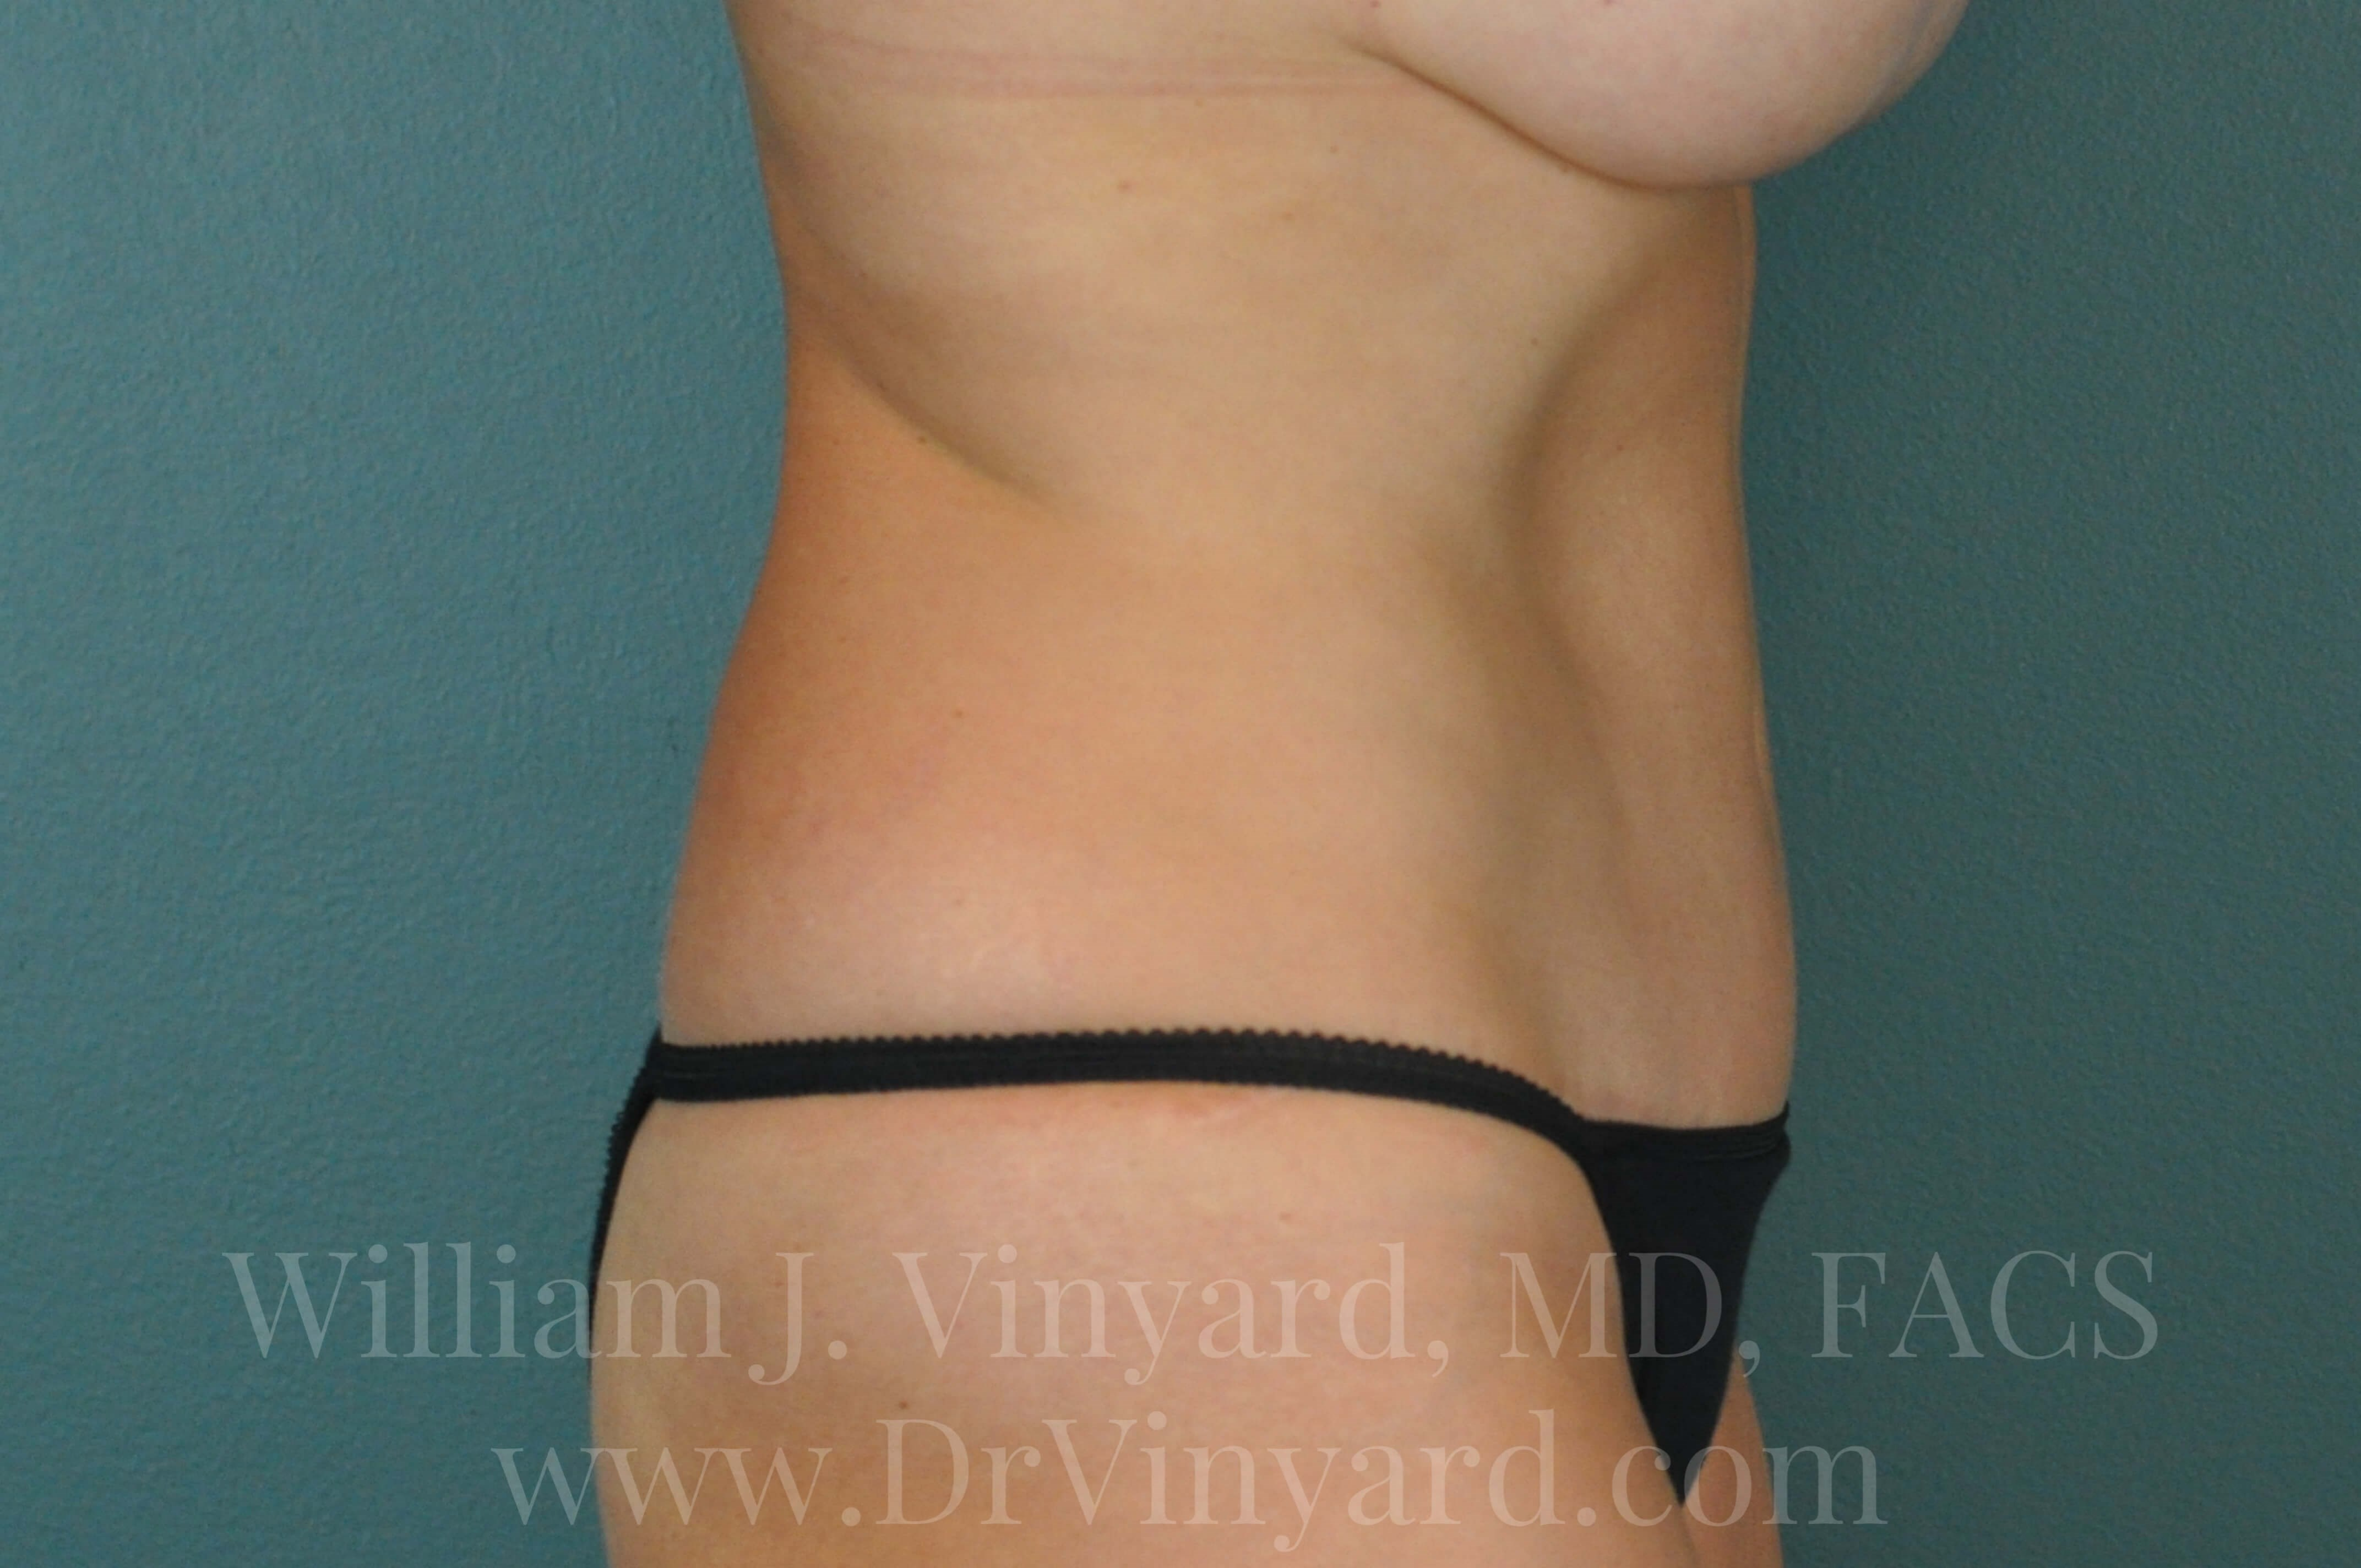 Right Side View - Abdomen After